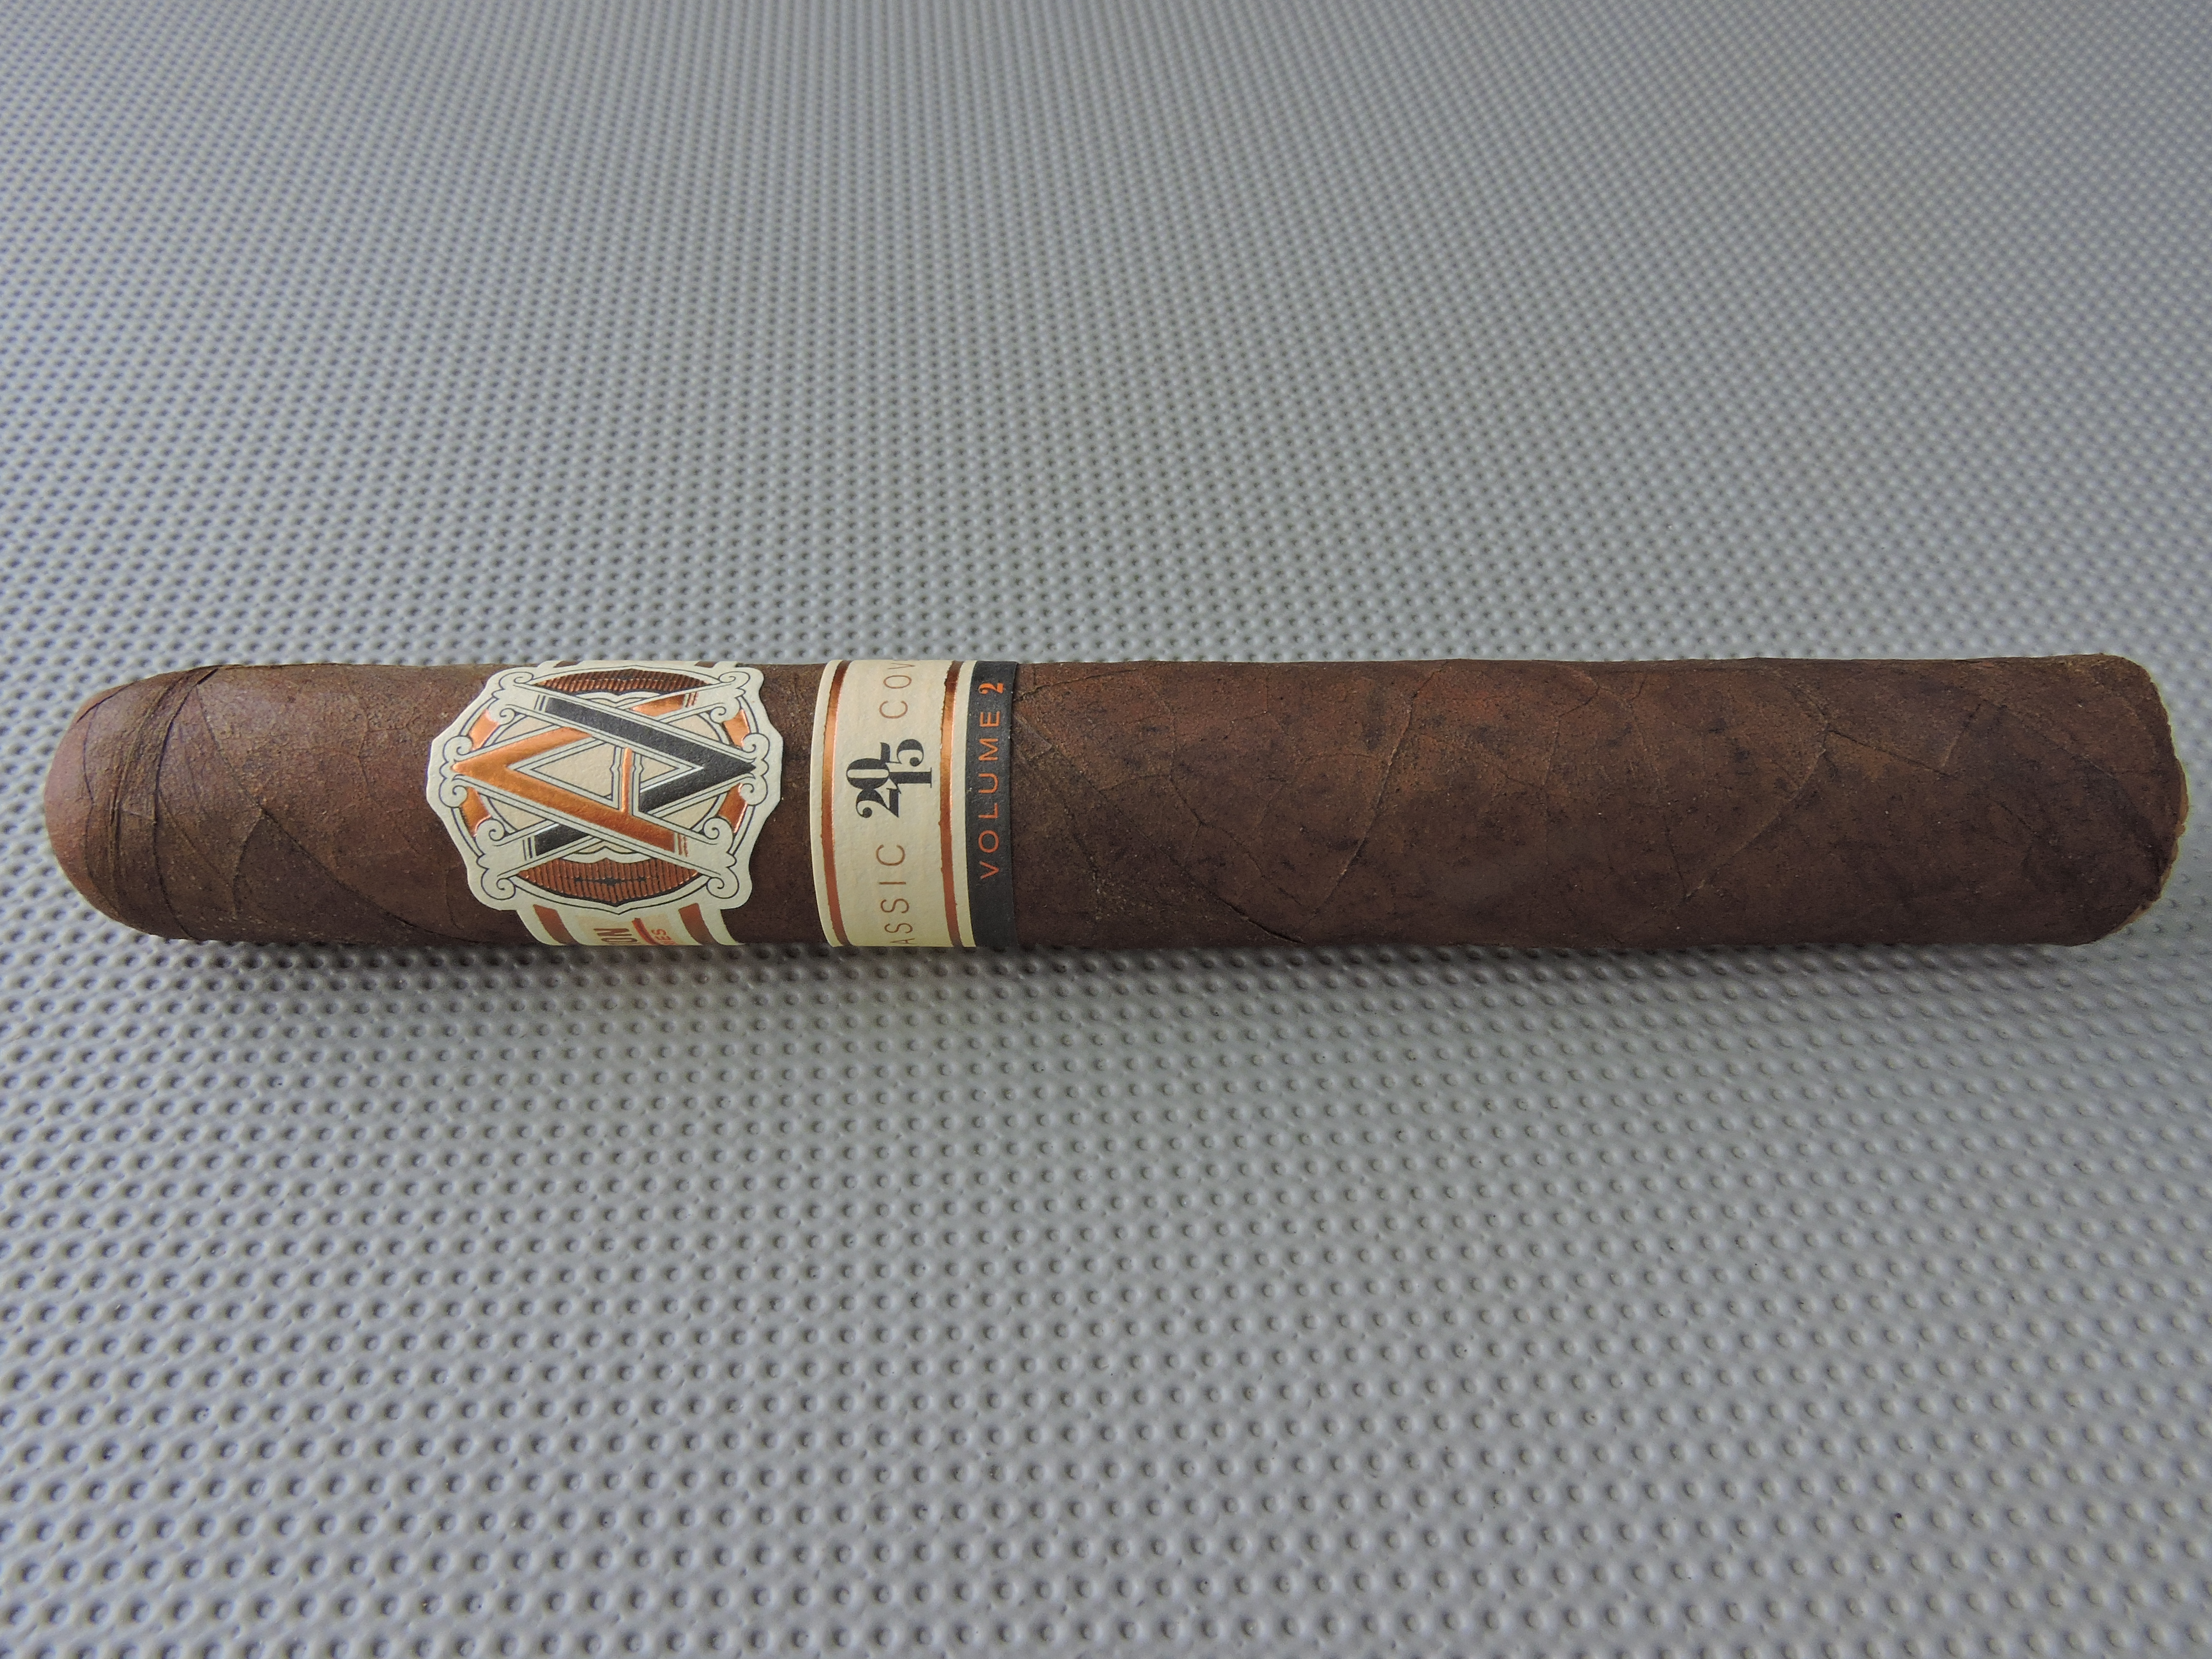 Cigar Review: Avo Classic Covers Volume 2 (Part of the Avo Improvisation Series)